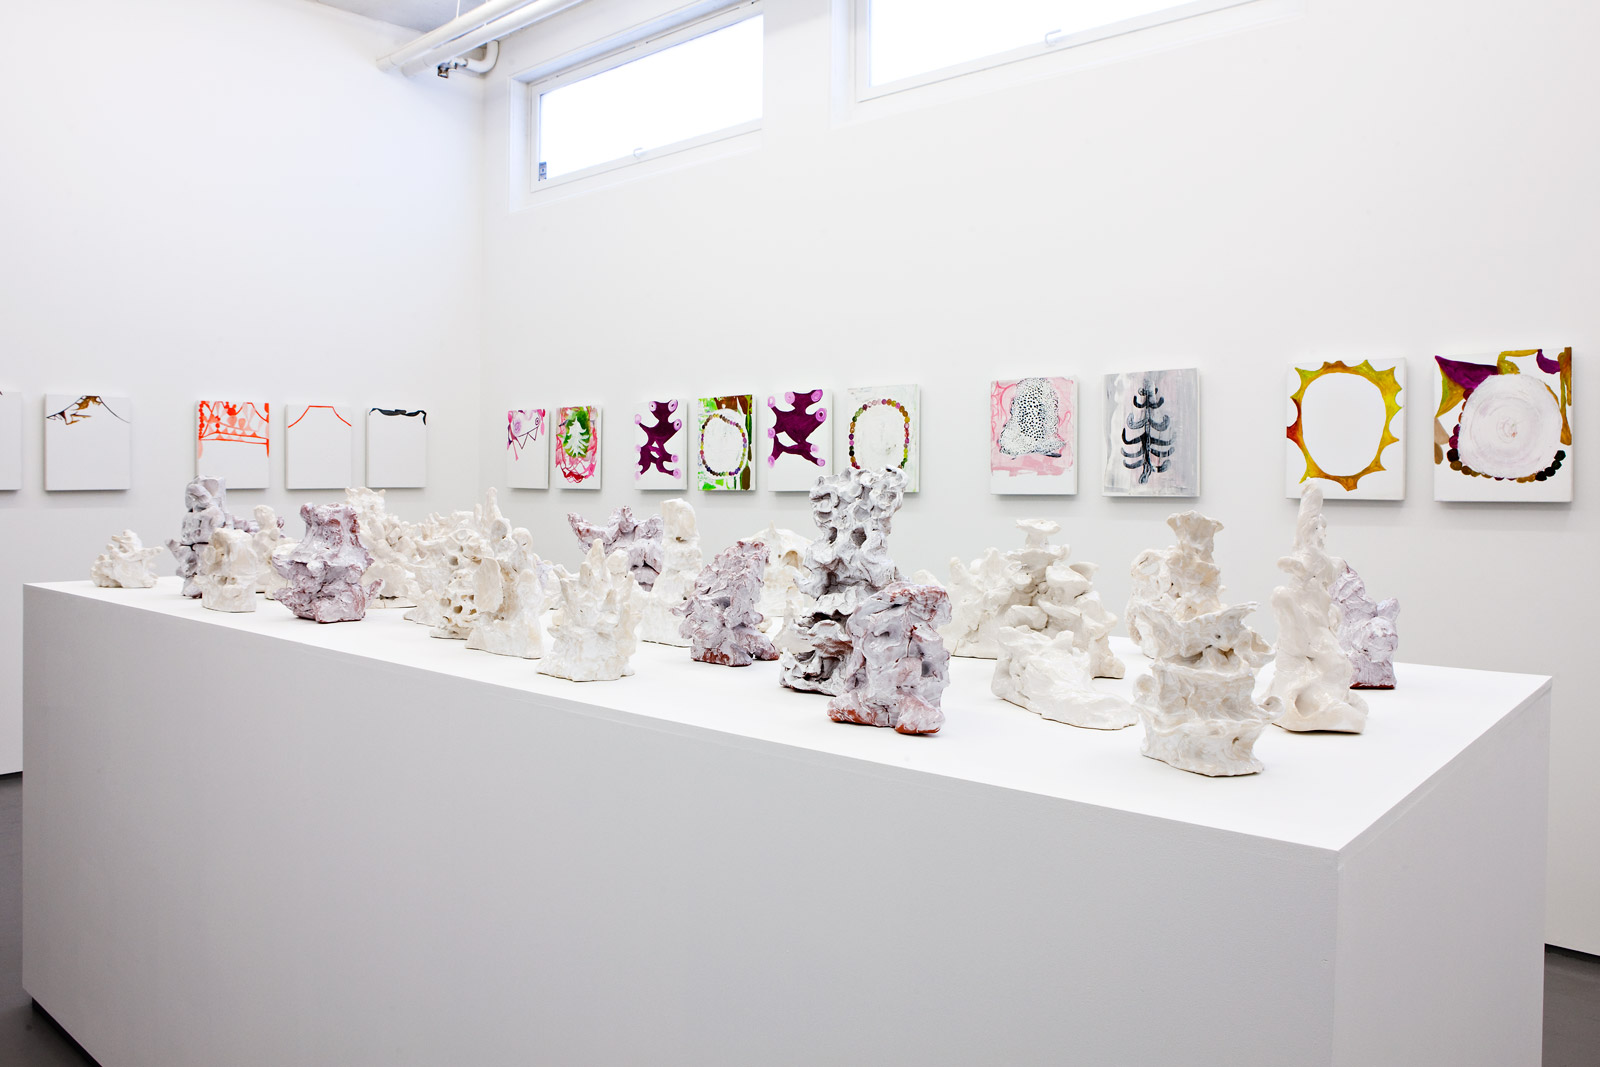 Installation view Galleri Riis, 2010, Rigoletto/3 Generations, 2007-09, glazed ceramics, different sizes up to ca 50 cm